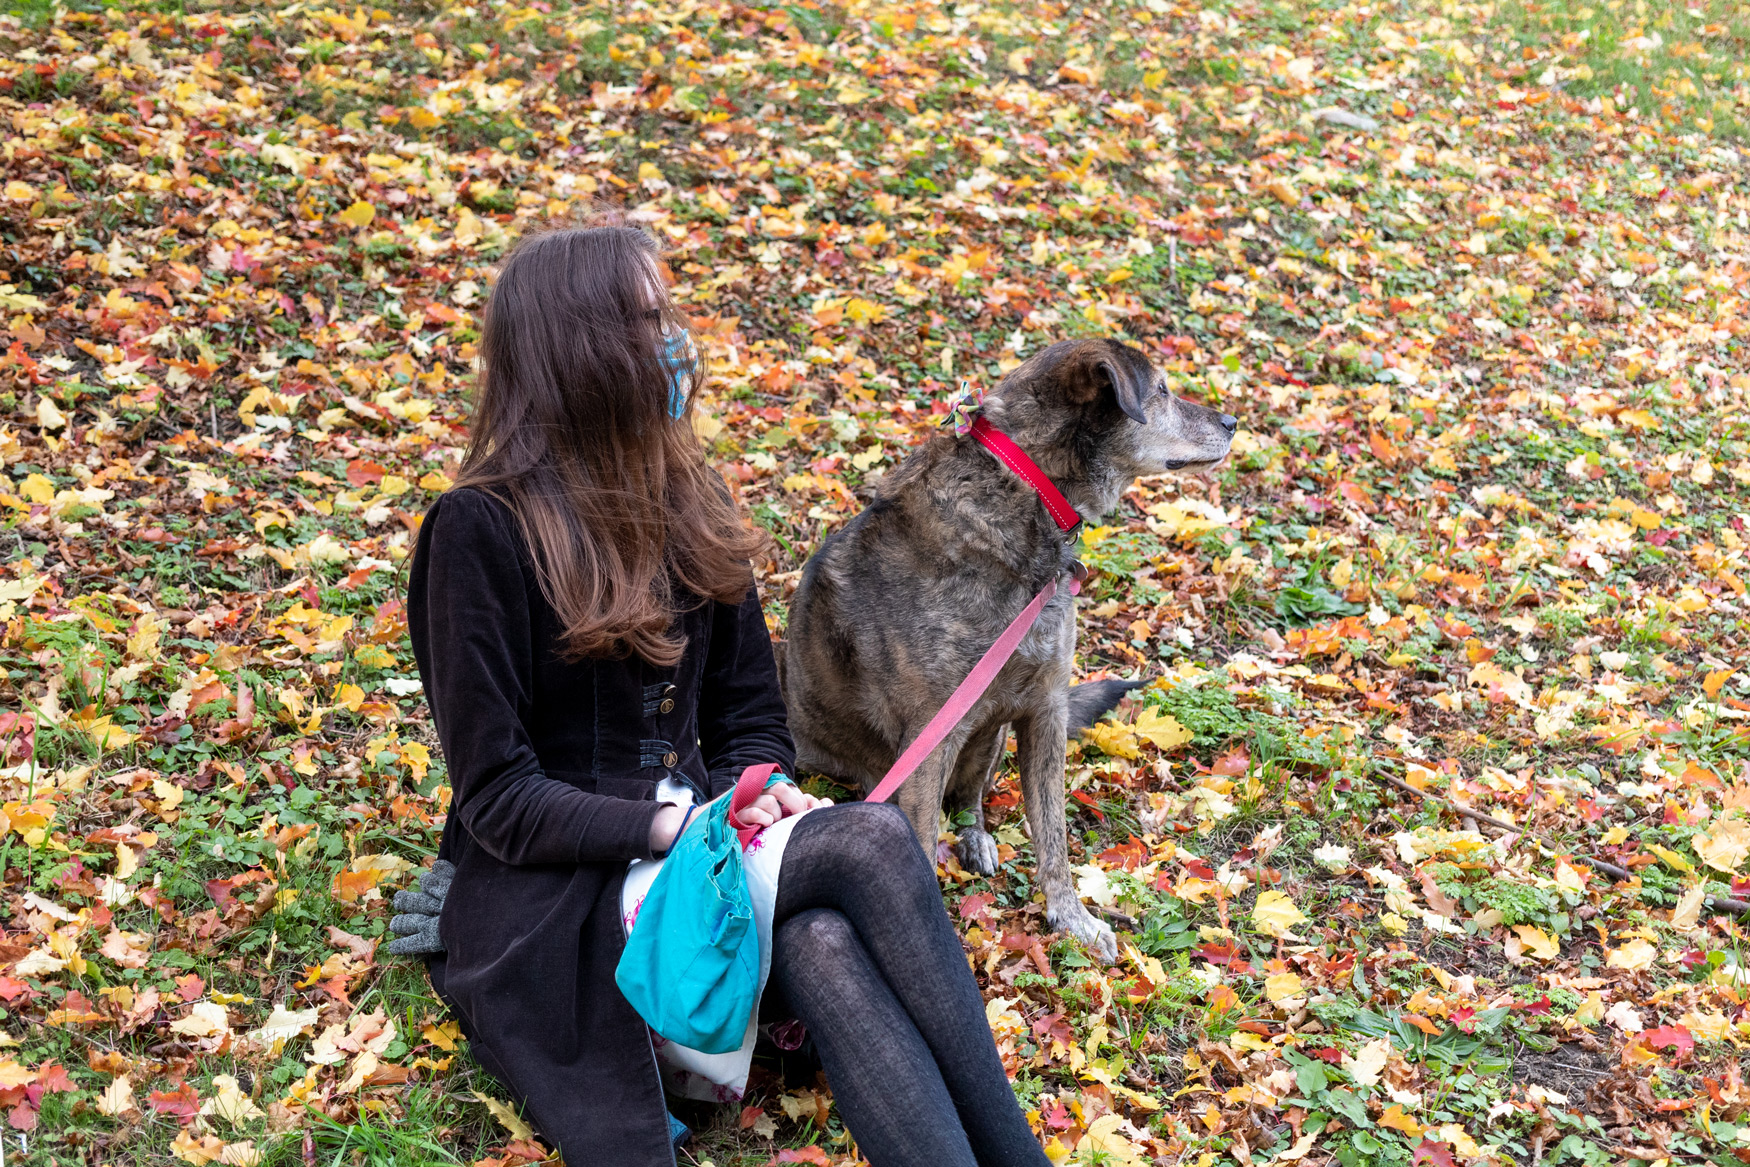 Woman sitting on the leaf-covered ground with dog sitting on the ground beside her